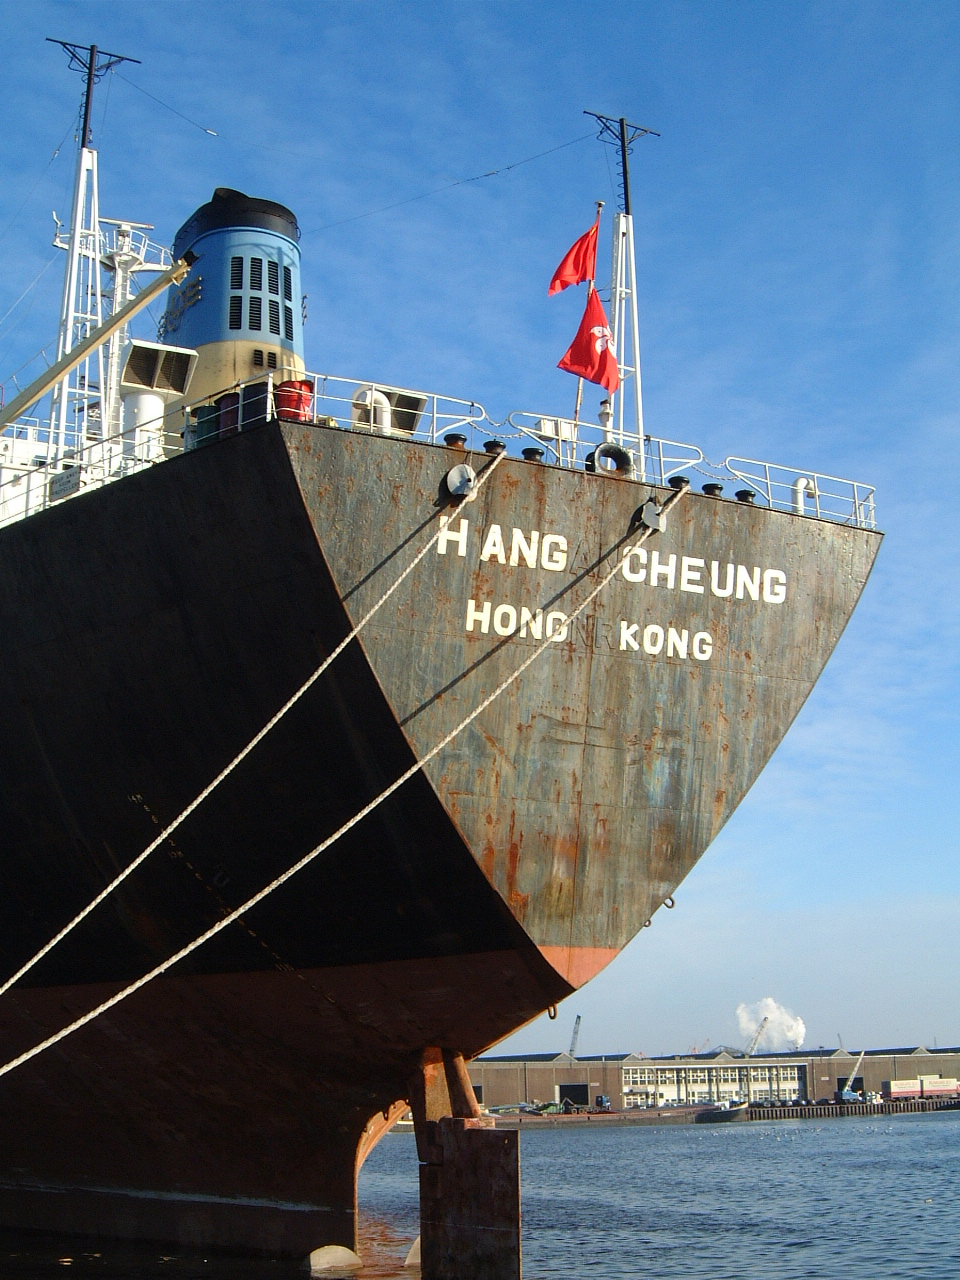 maartent hang cheung hong kong shipping freight ship boat transport stern moored